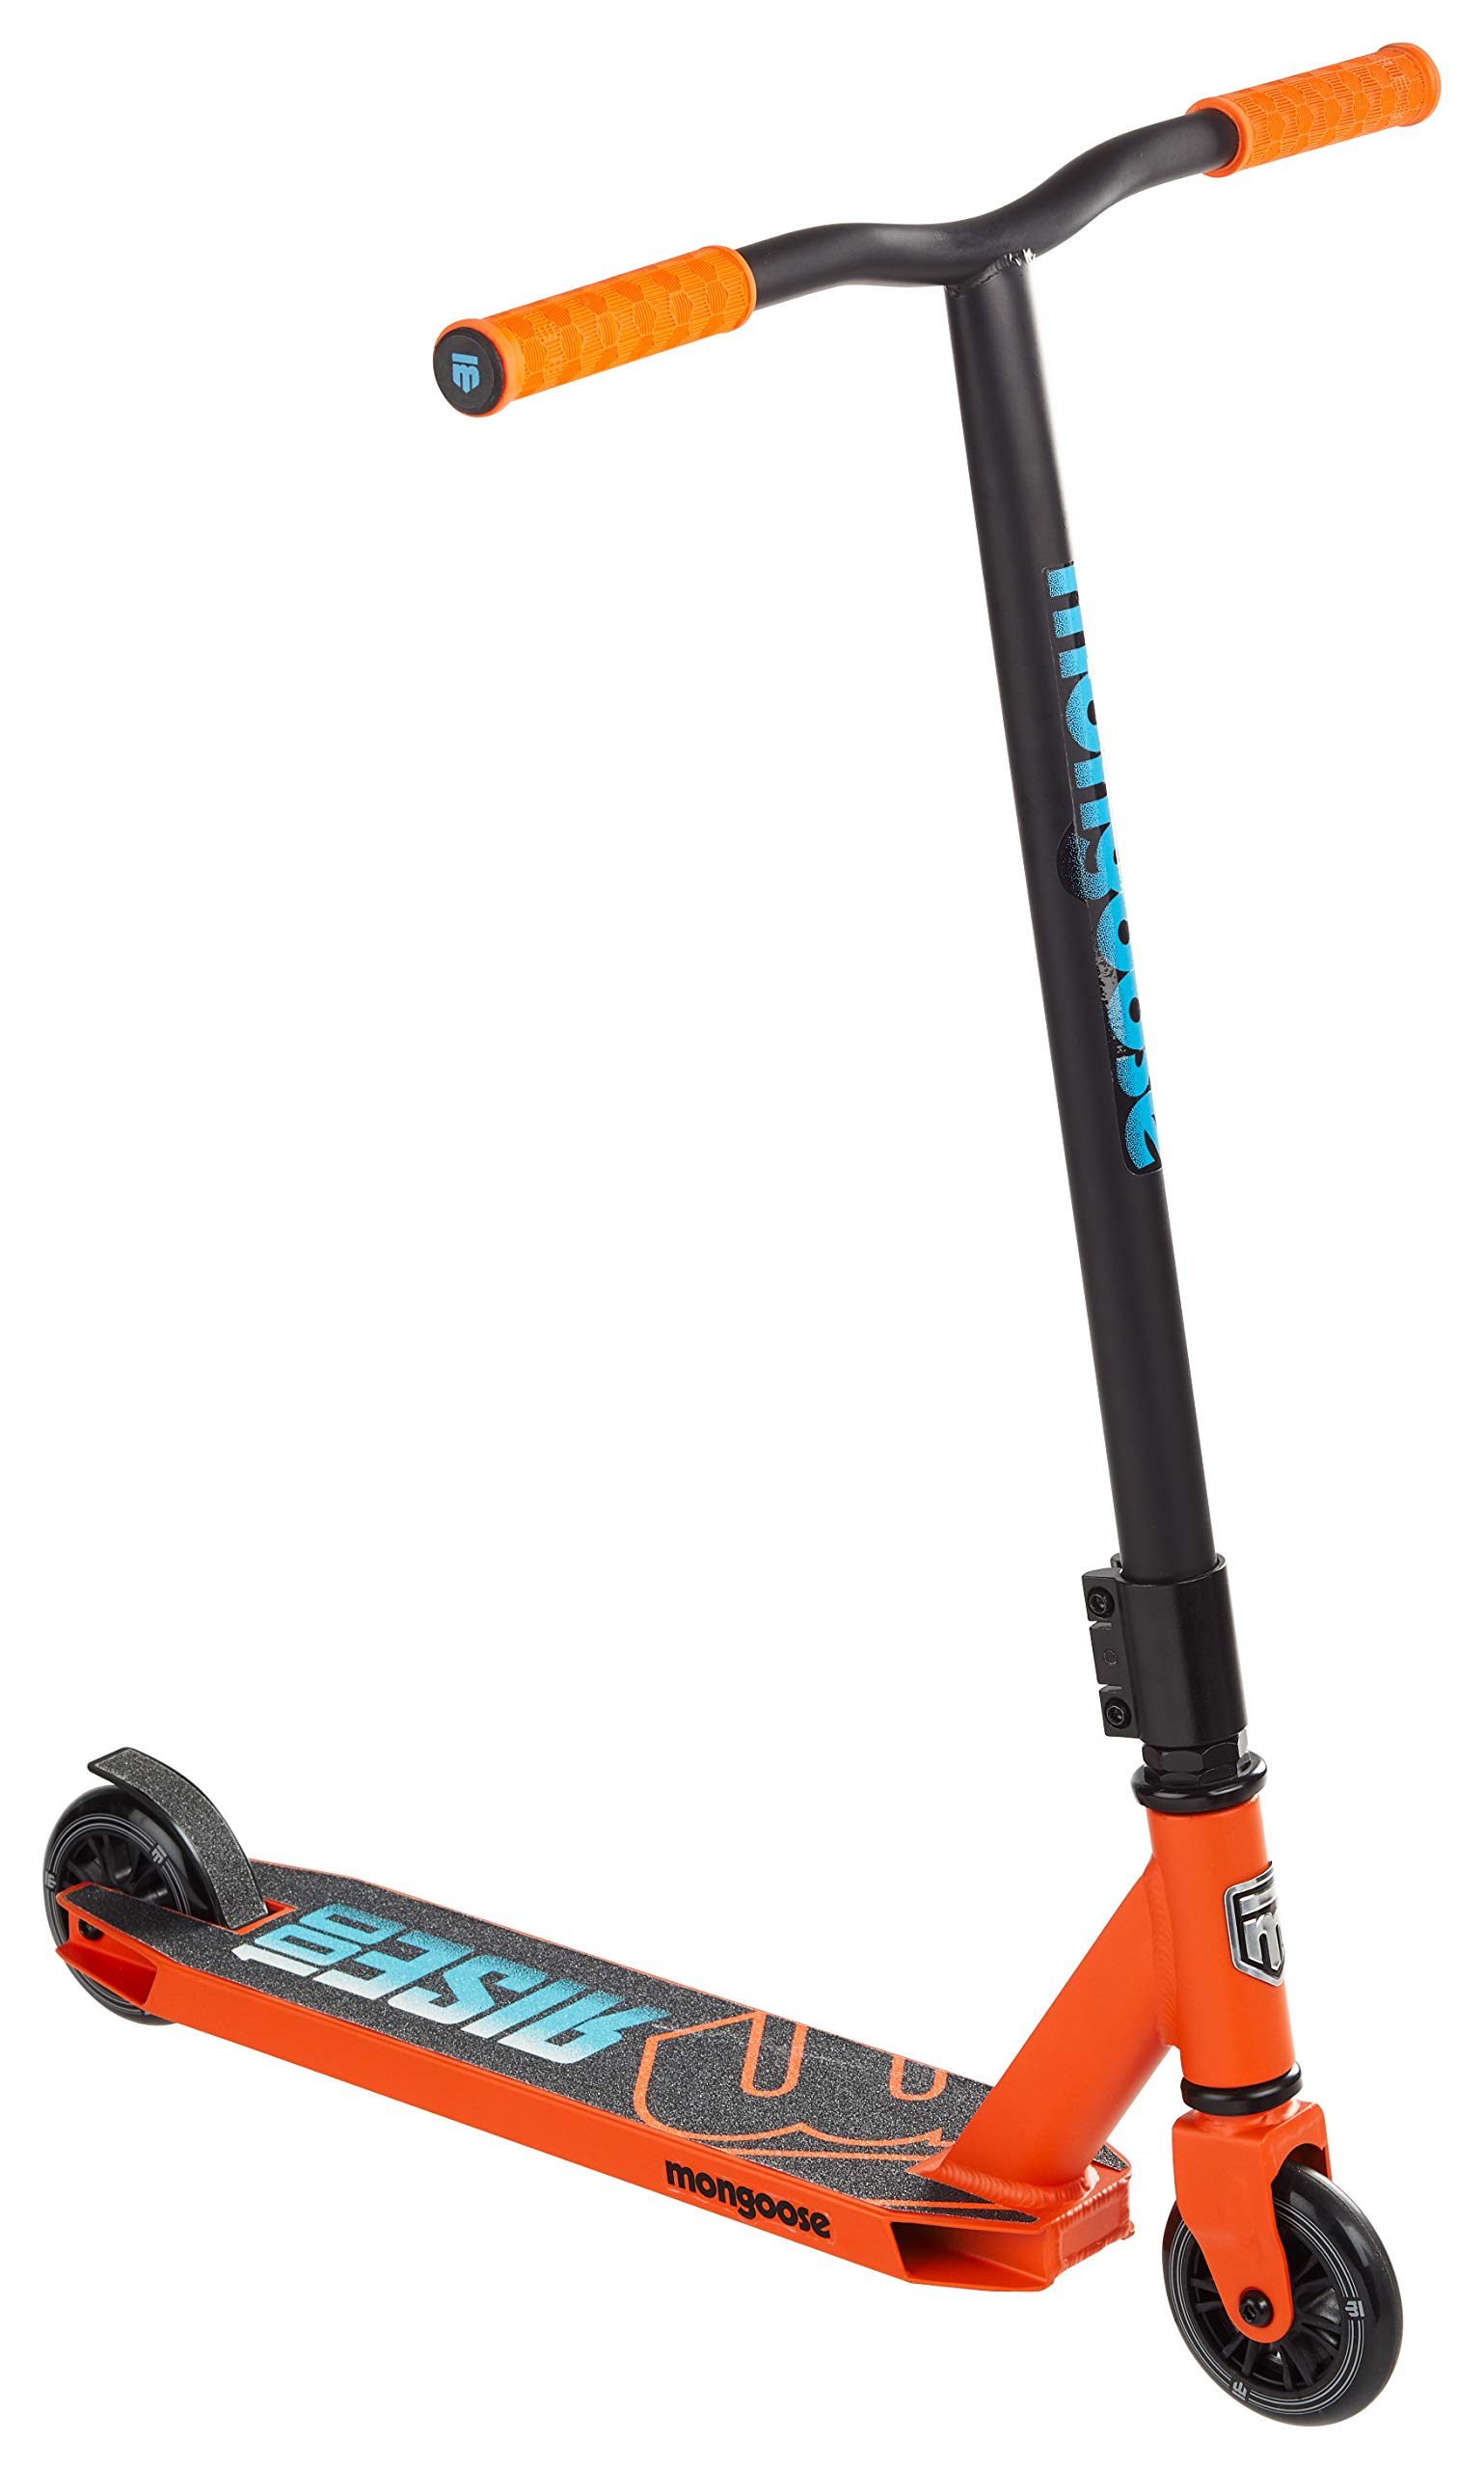 Mongoose Rise 100 Freestyle Stunt Kick Scooter, Featuring Lightweight Alloy Deck with Full-Coverage Max Grip and Bike-Style Handlebars, 100mm Wheels, Orange/Blue